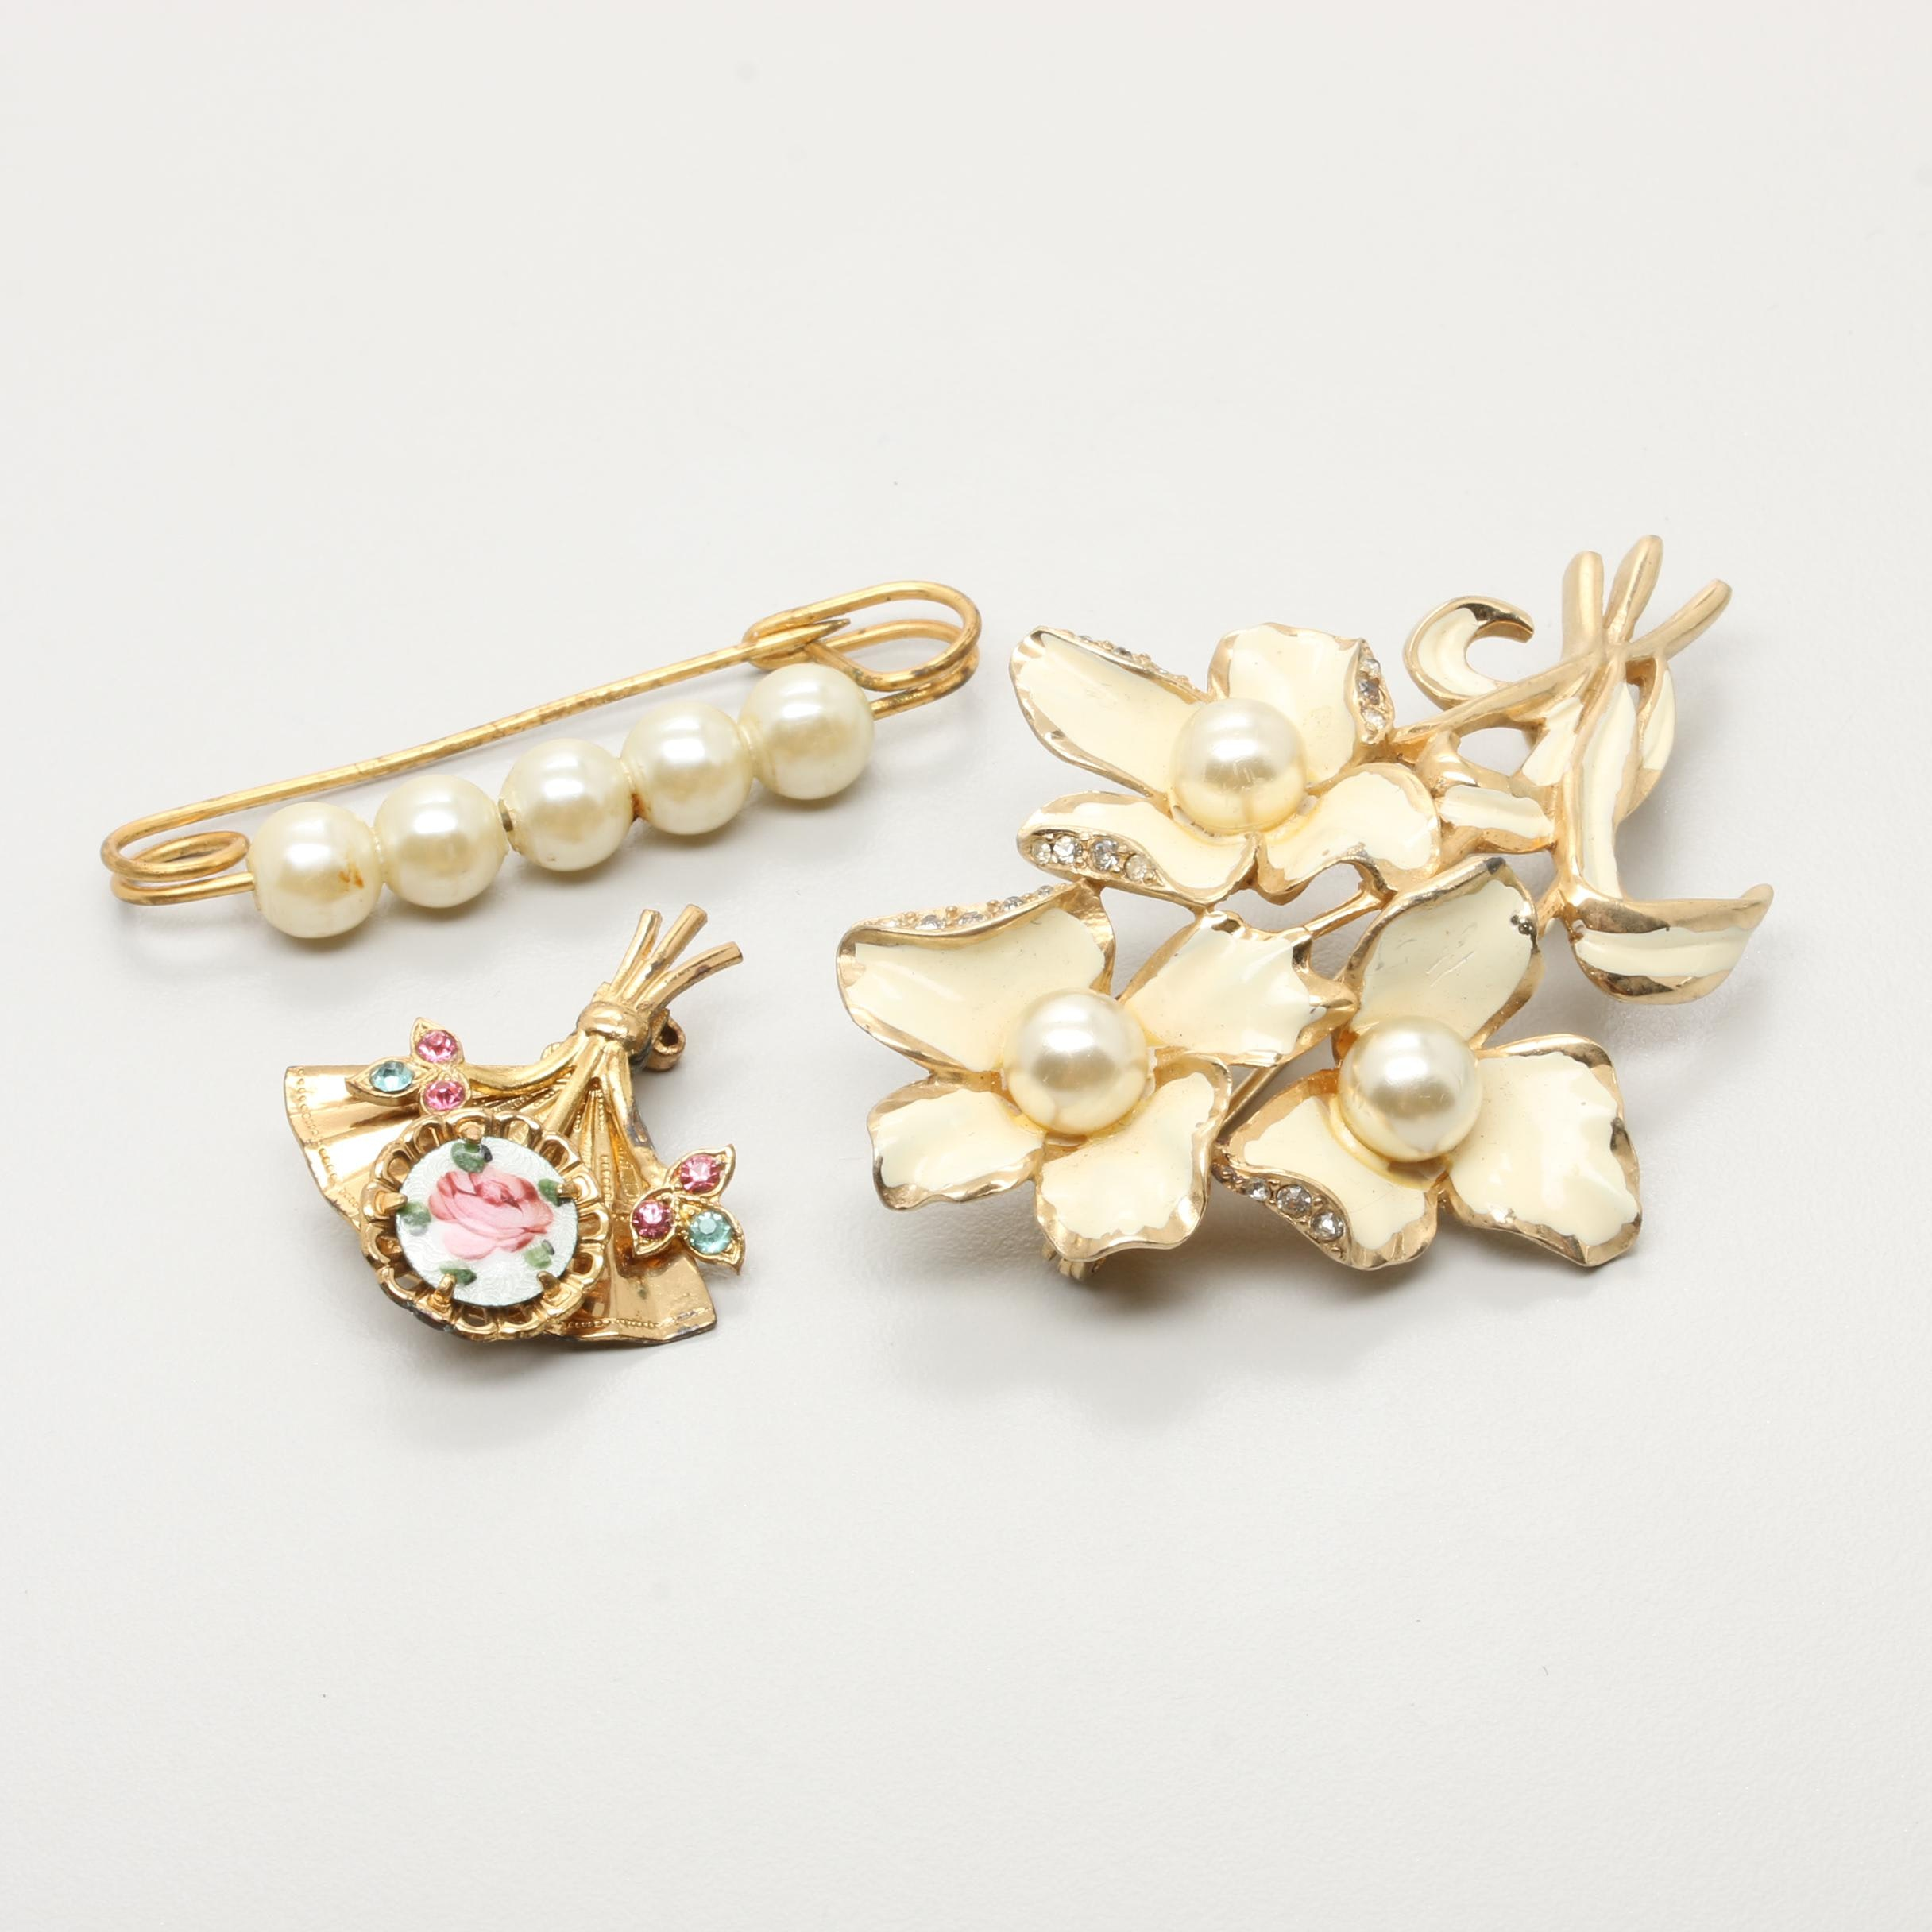 Gold Tone Brooch Selection Including Imitation Pearl